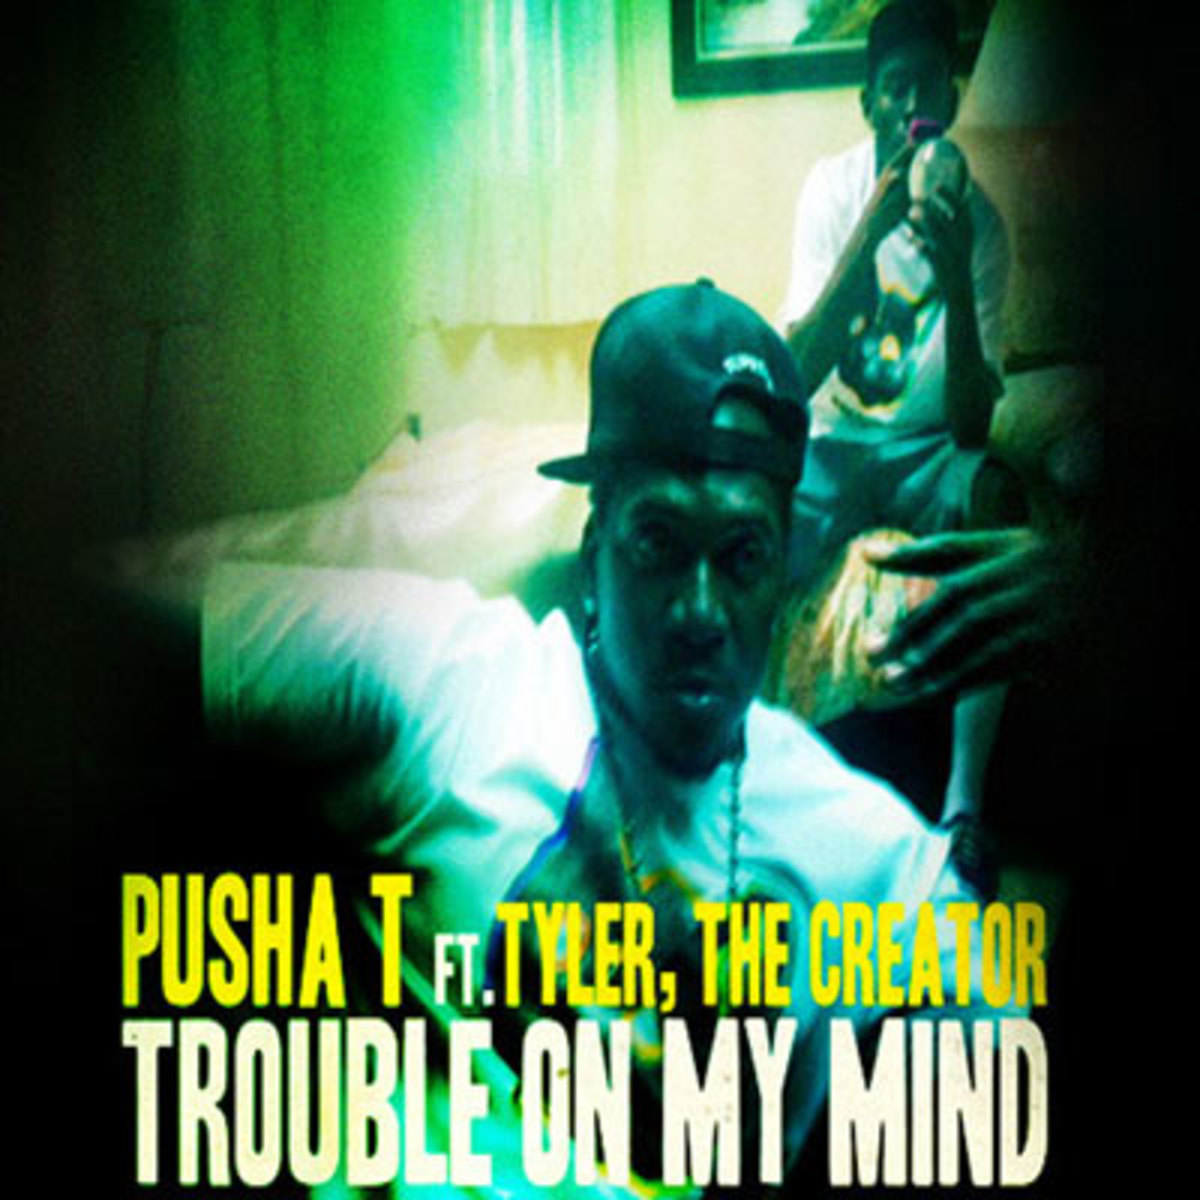 pushat-troubleonmymind.jpg